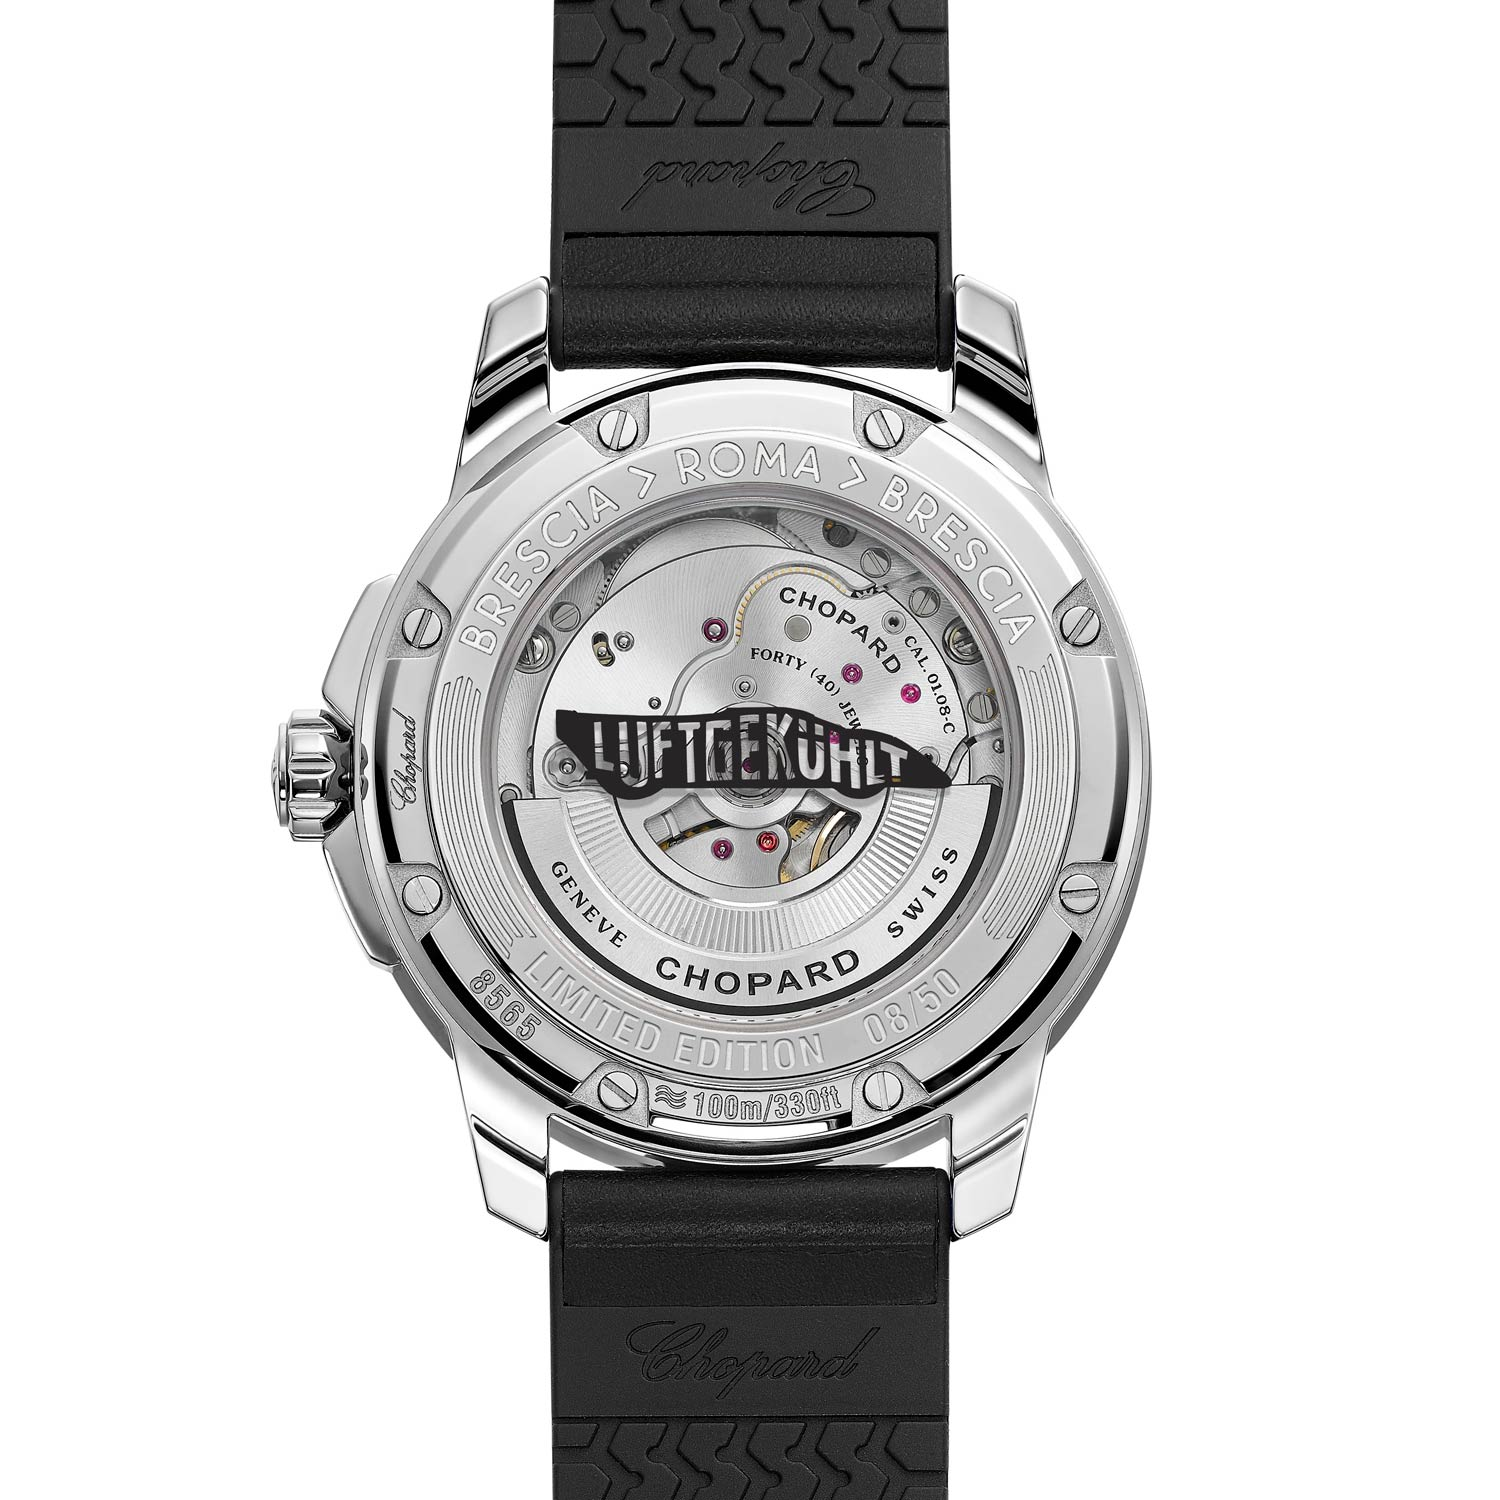 The caseback is engraved with the Luftgekühlt logo and surrounded by a steel ring marked with the 'Brescia > Roma > Brescia' route of the Mille Miglia